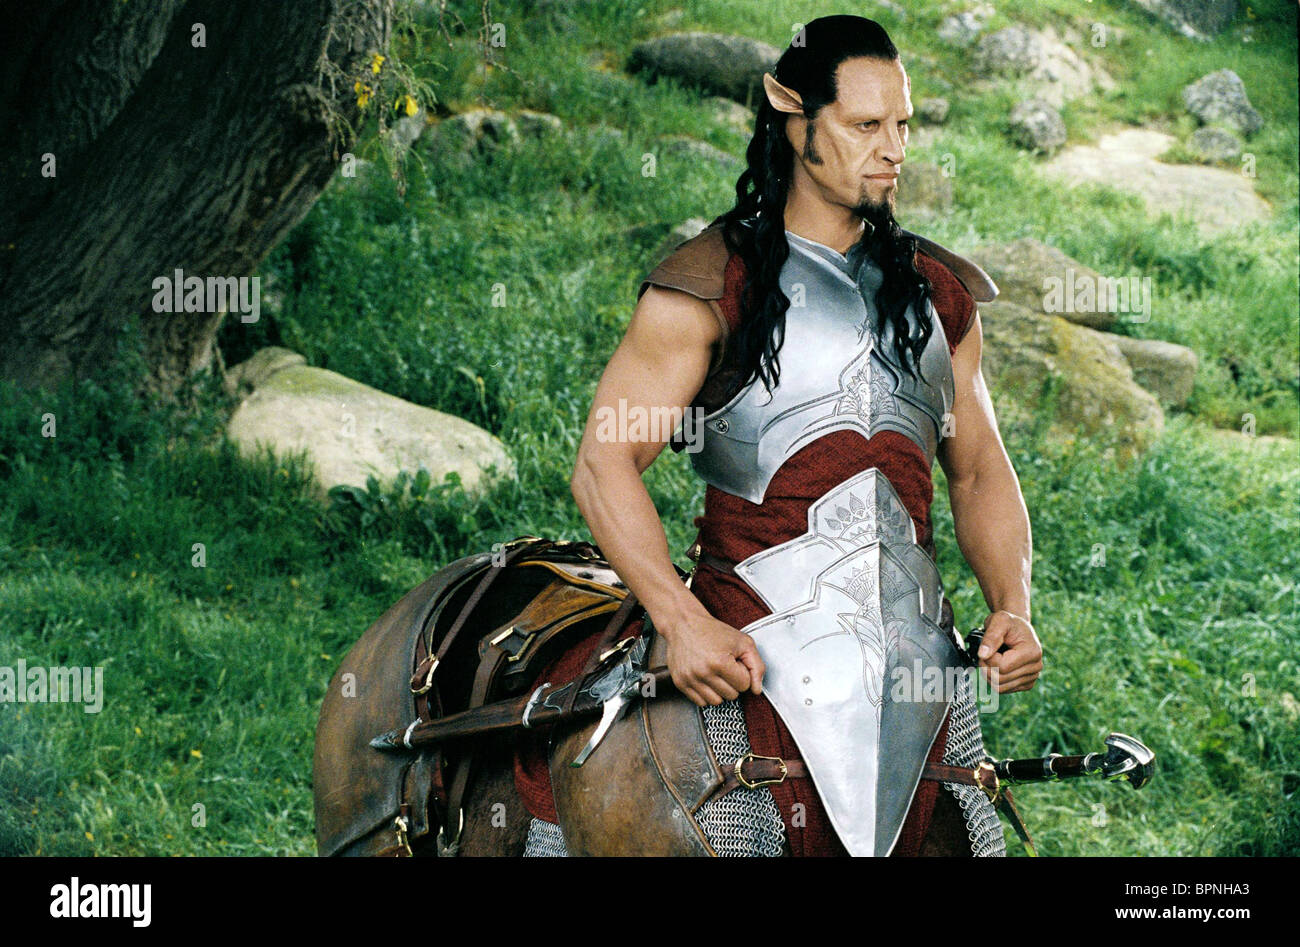 PATRICK KAKE AS OREIUS THE MINOTAUR THE CHRONICLES OF NARNIA: THE LION THE WITCH AND THE WARDROBE (2005) - Stock Image